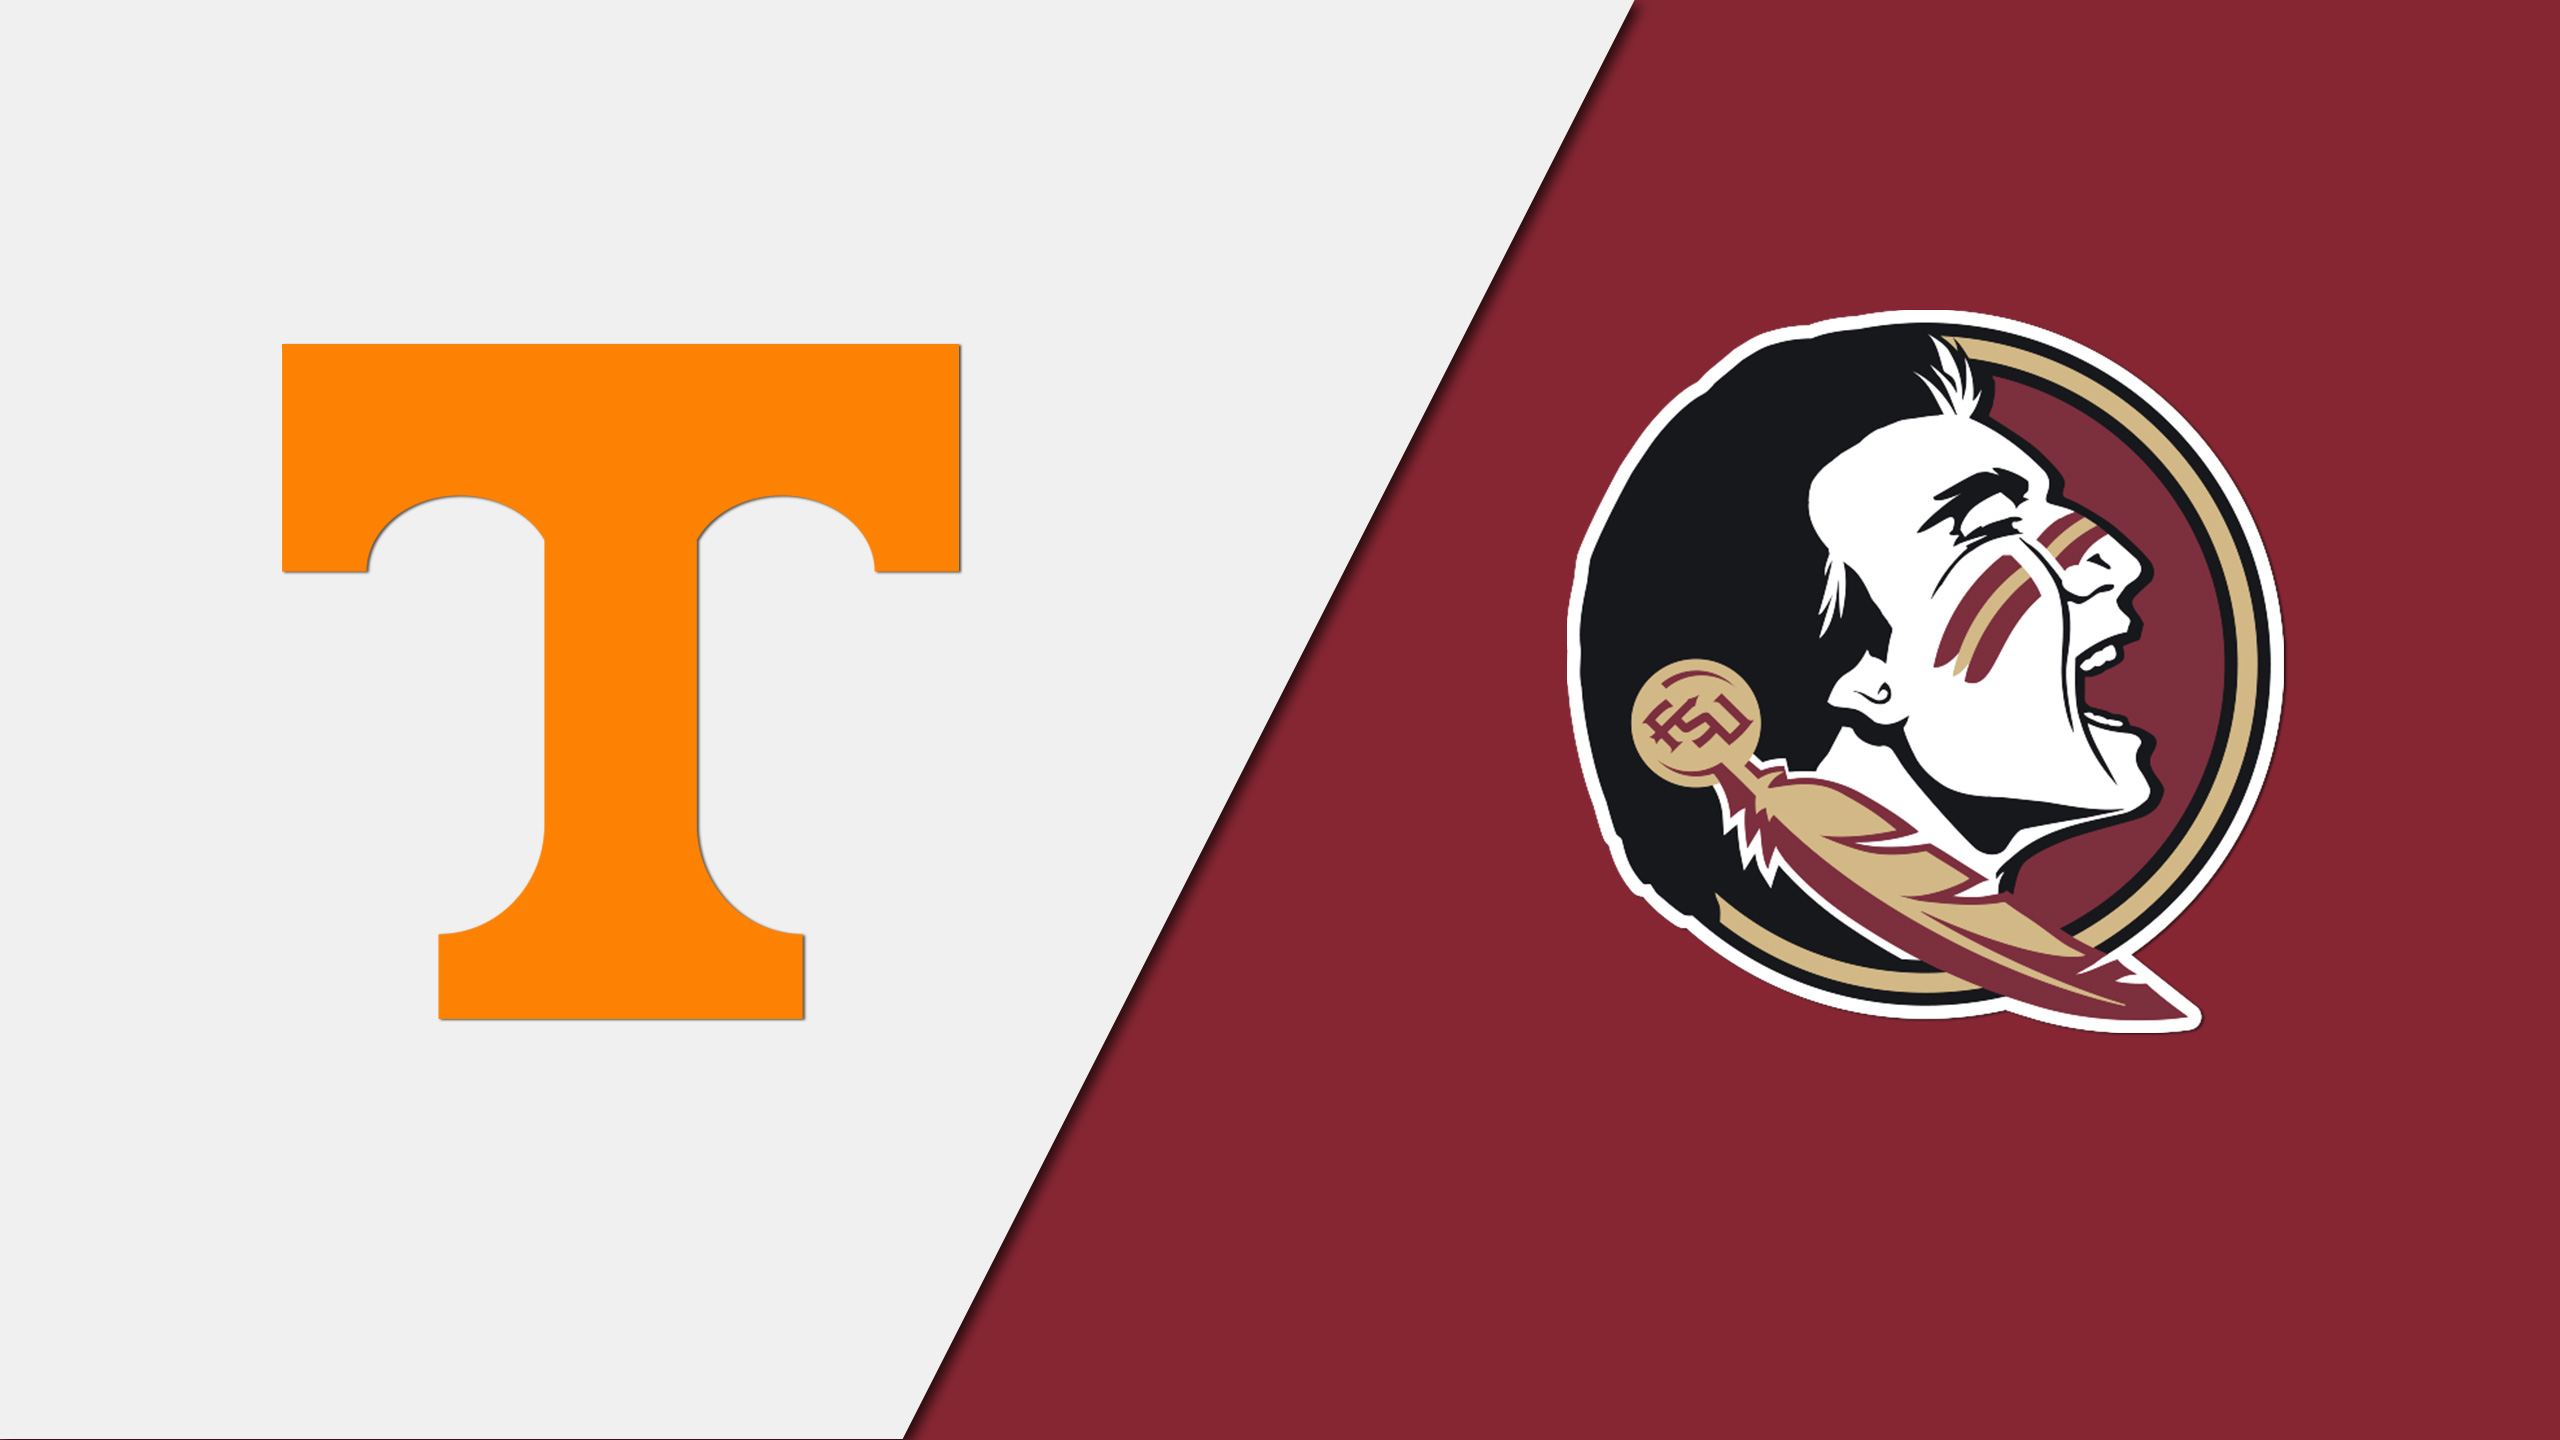 #6 Tennessee vs. #2 Florida State (Softball)